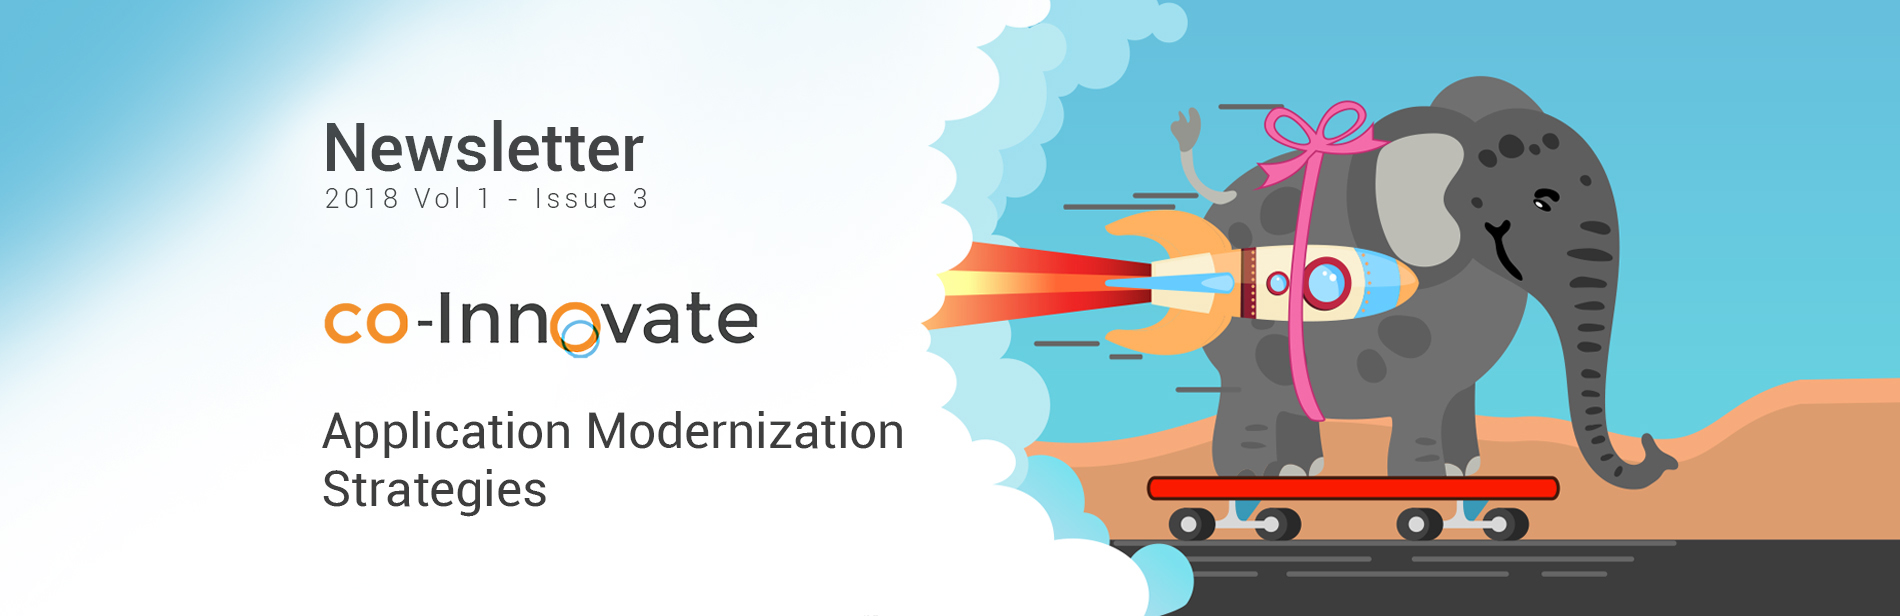 coMakeIT | co-Innovate Newsletter 2018 Vol 1 – Issue 3